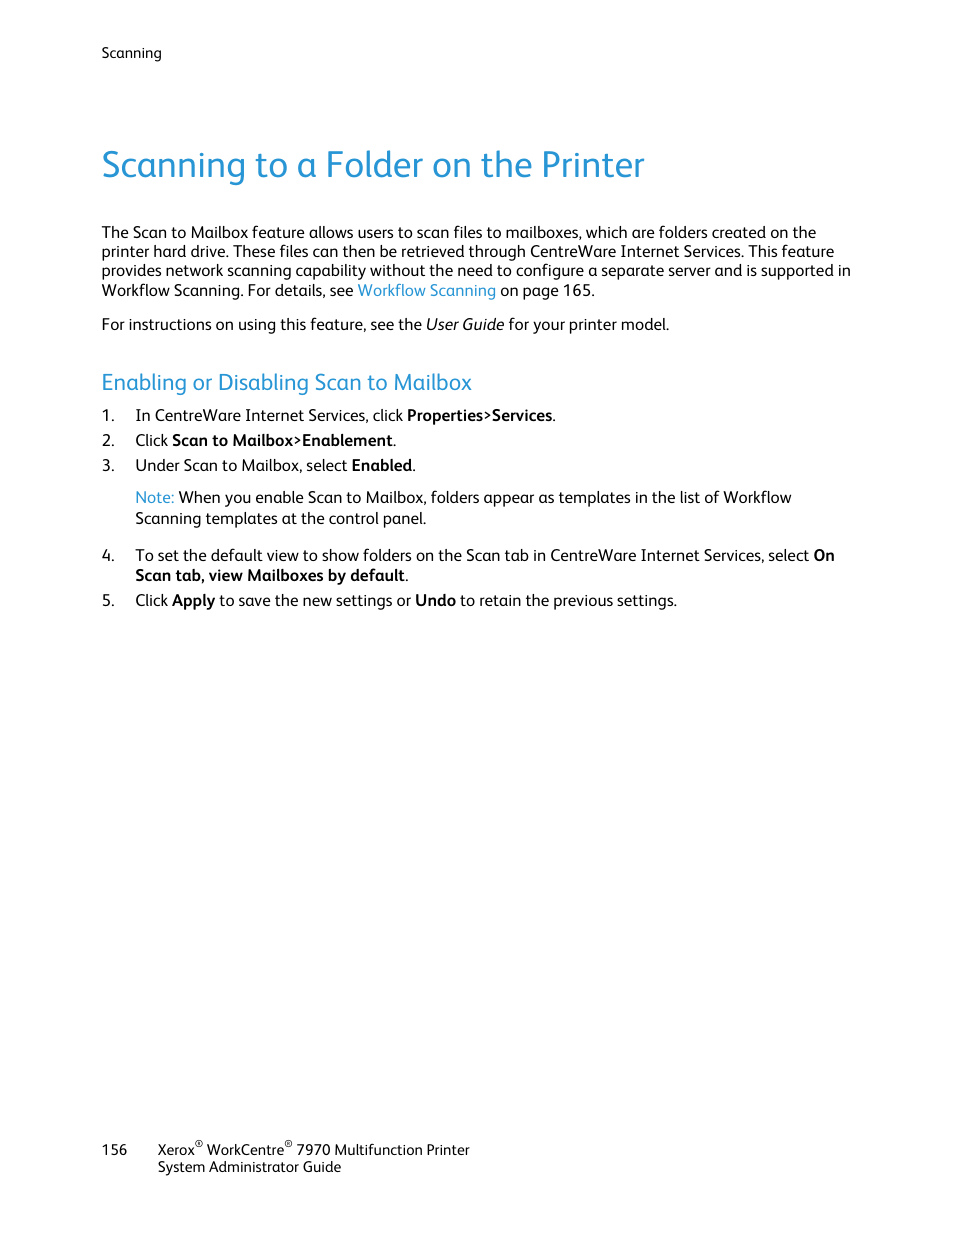 Scanning to a folder on the printer, Enabling or disabling scan to